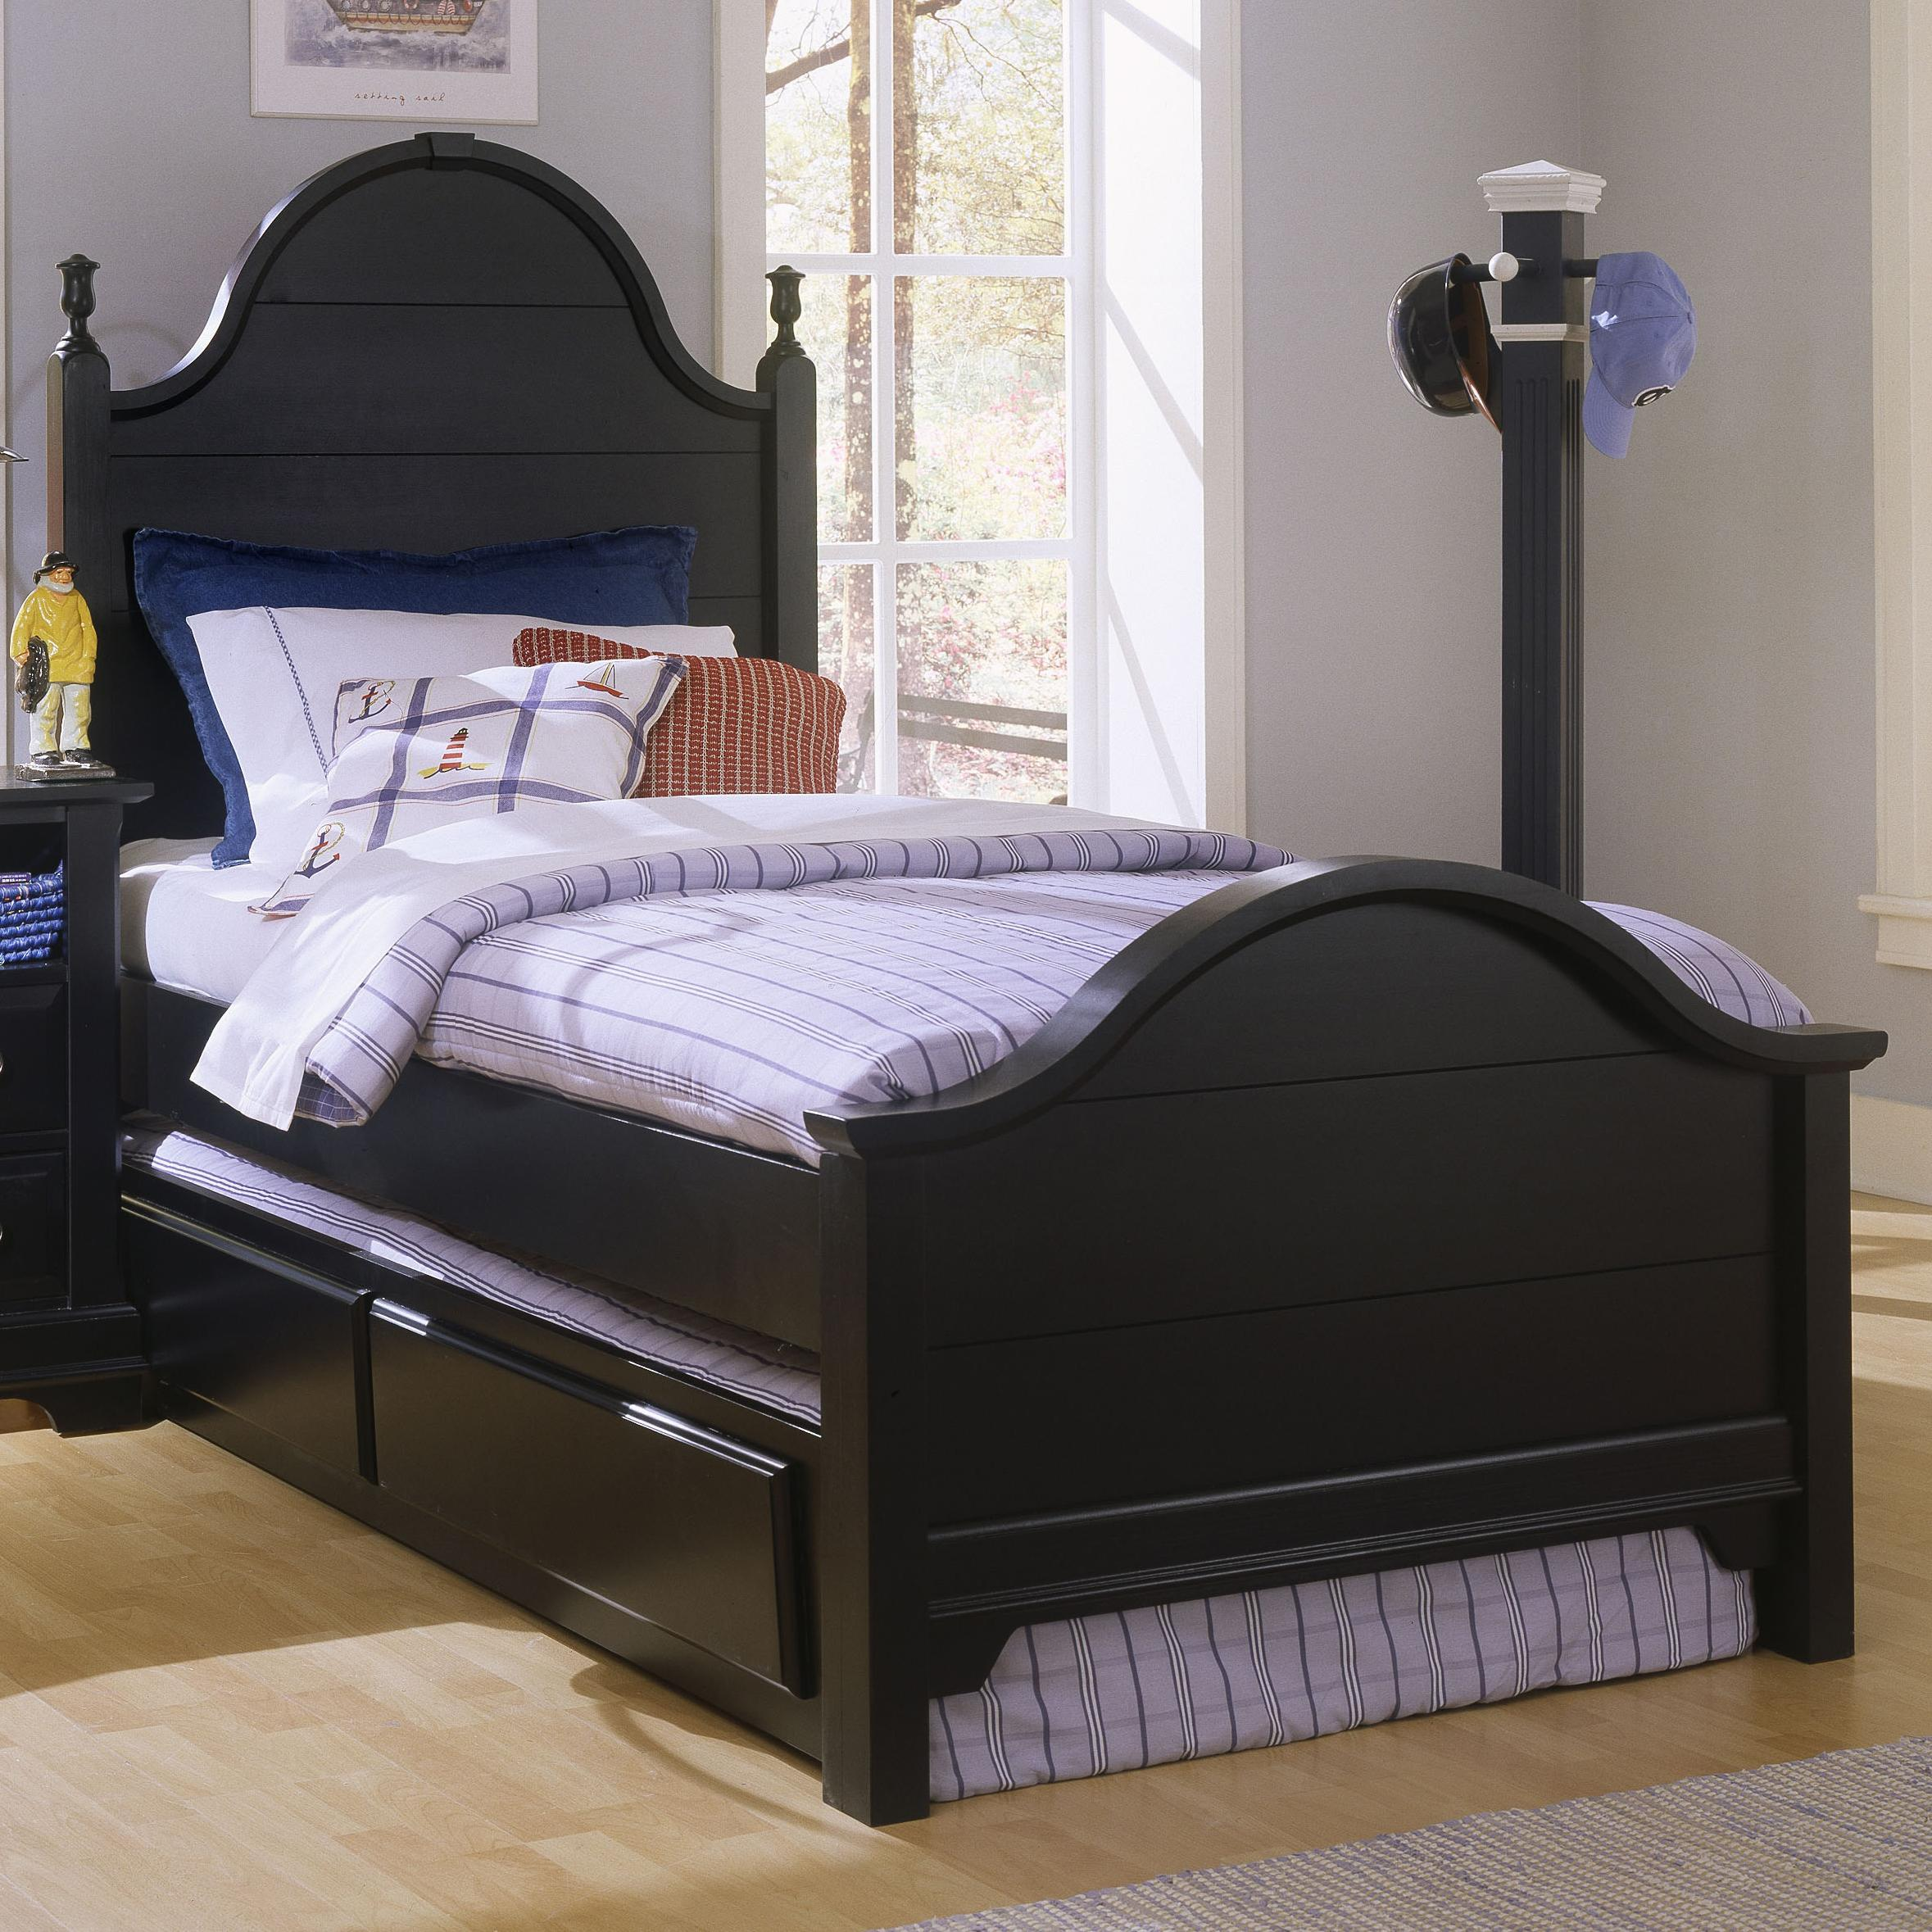 Vaughan Bassett Cottage Twin Panel Bed with Trundle - Item Number: BB16-338+833+900+822A+B